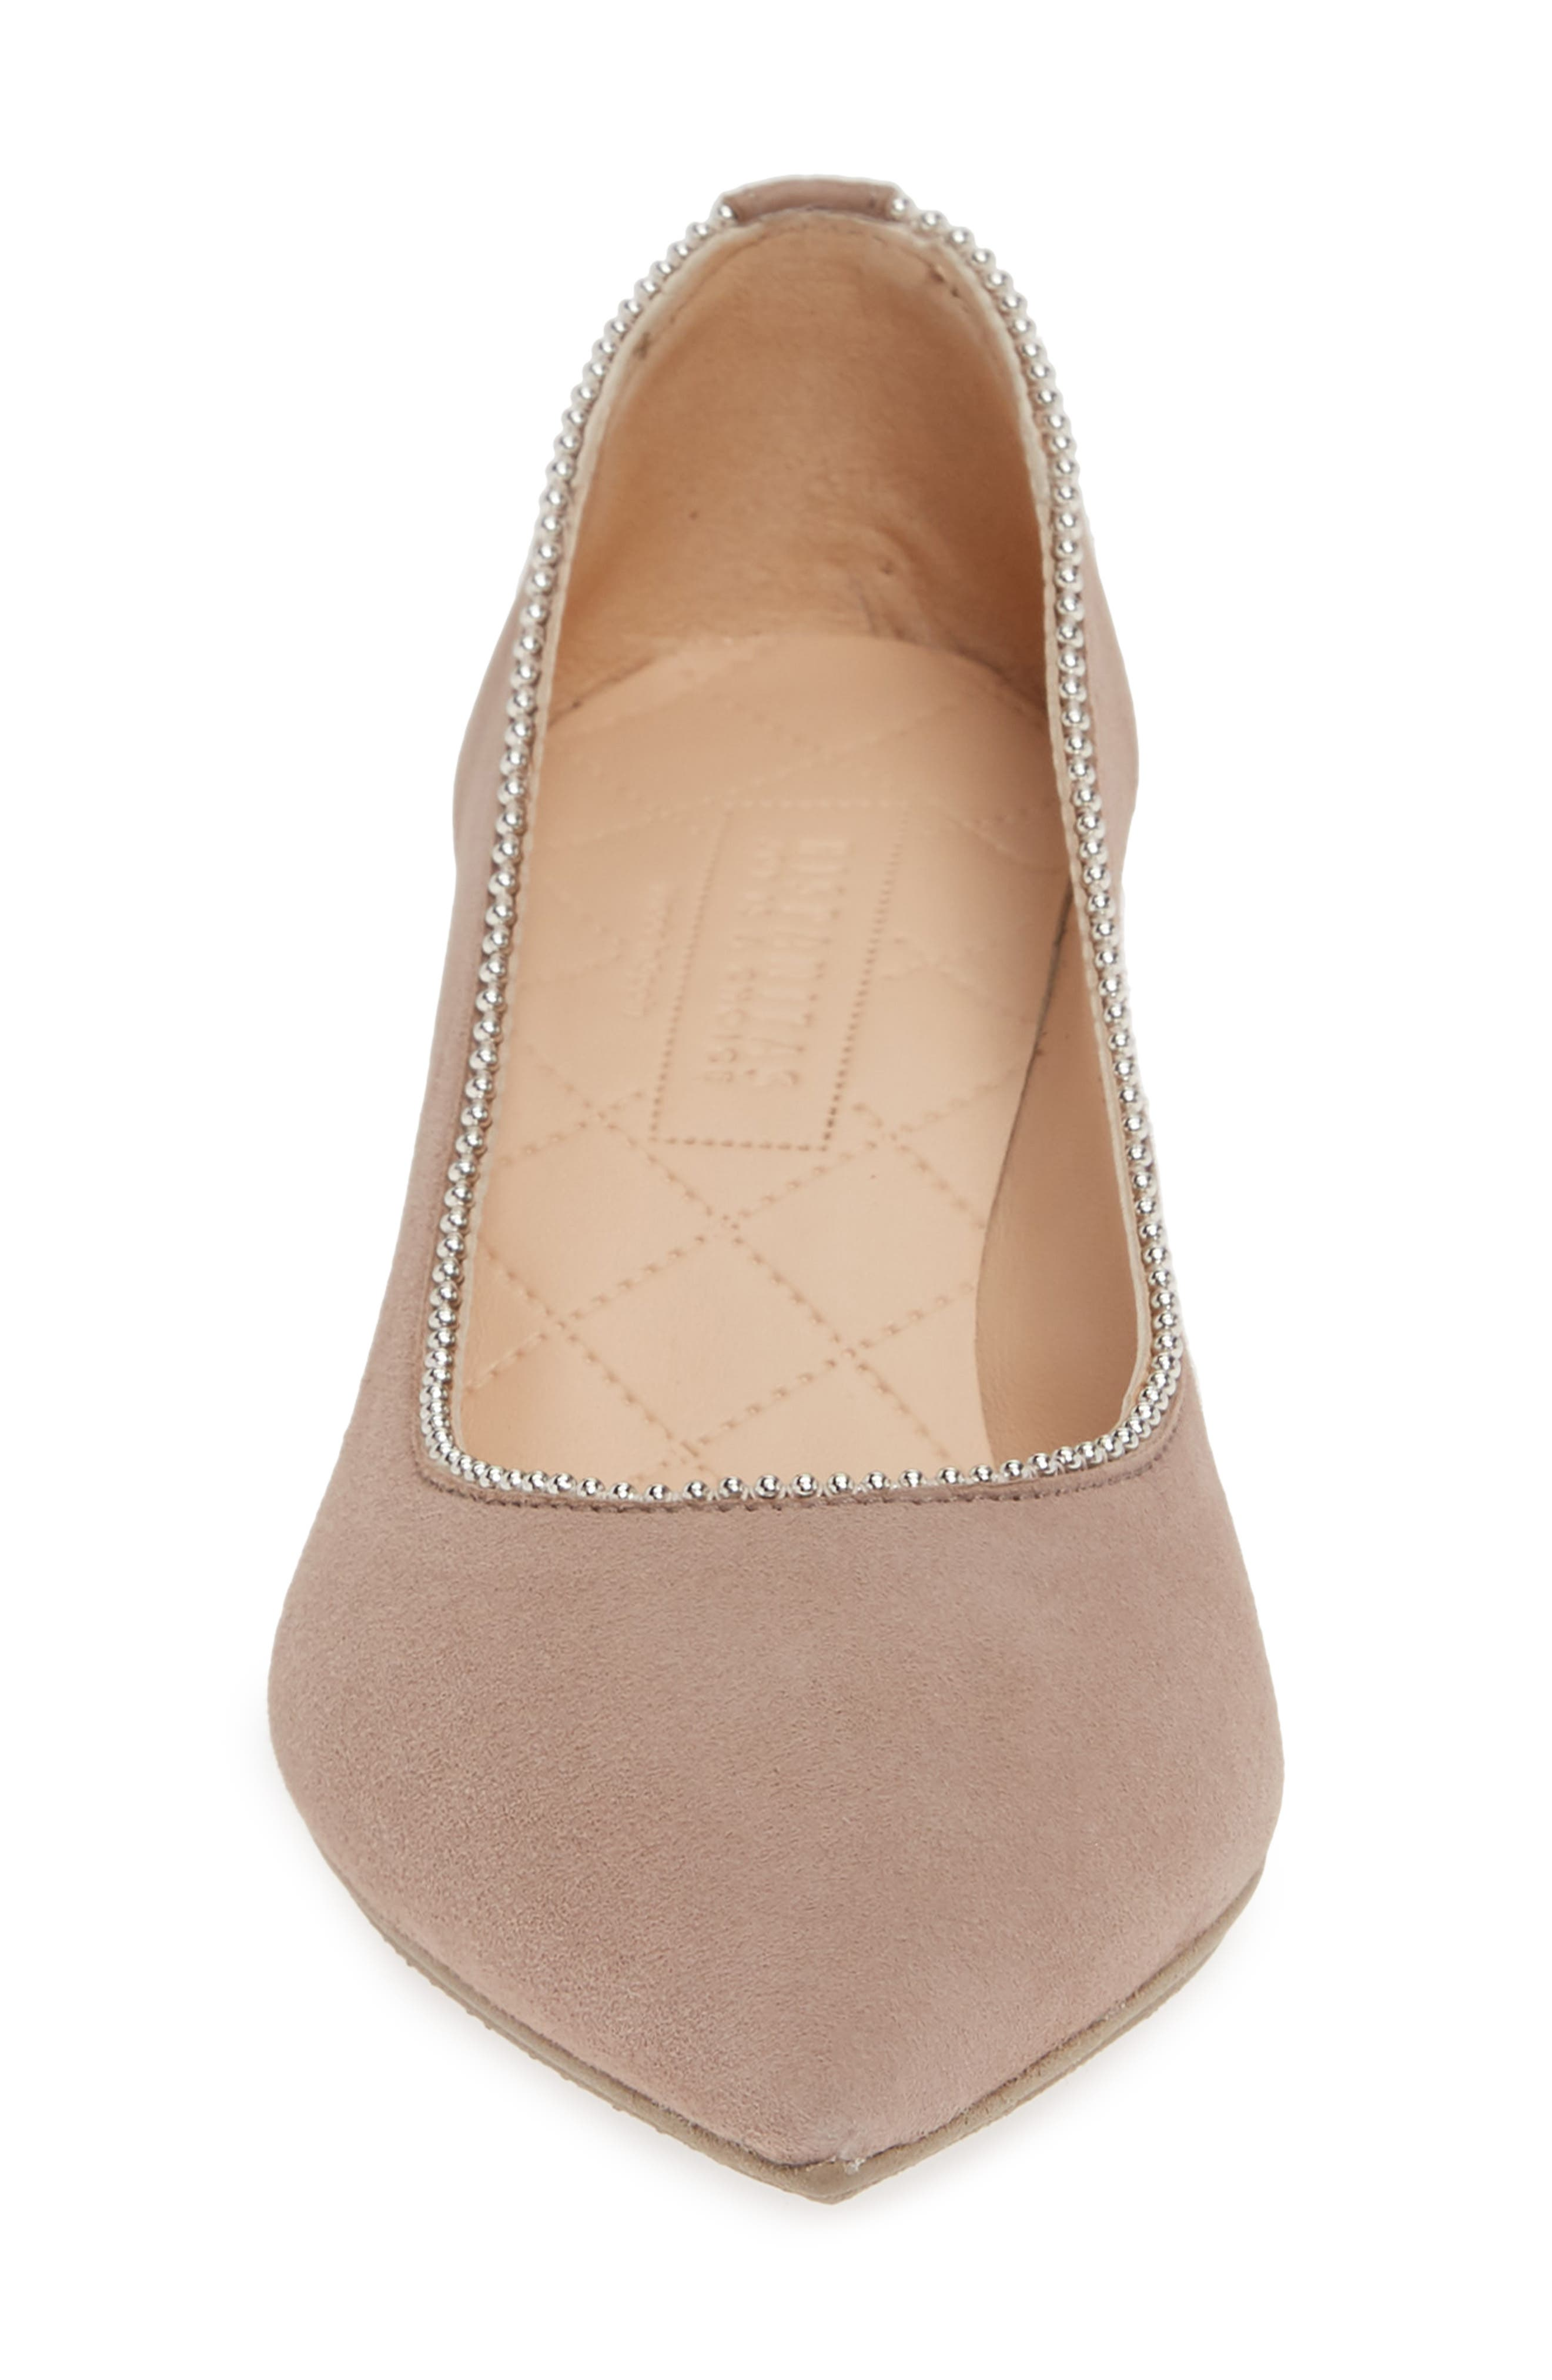 HISPANITAS, Carina Ball Chain Pointy Toe Pump, Alternate thumbnail 4, color, BEIGE SUEDE